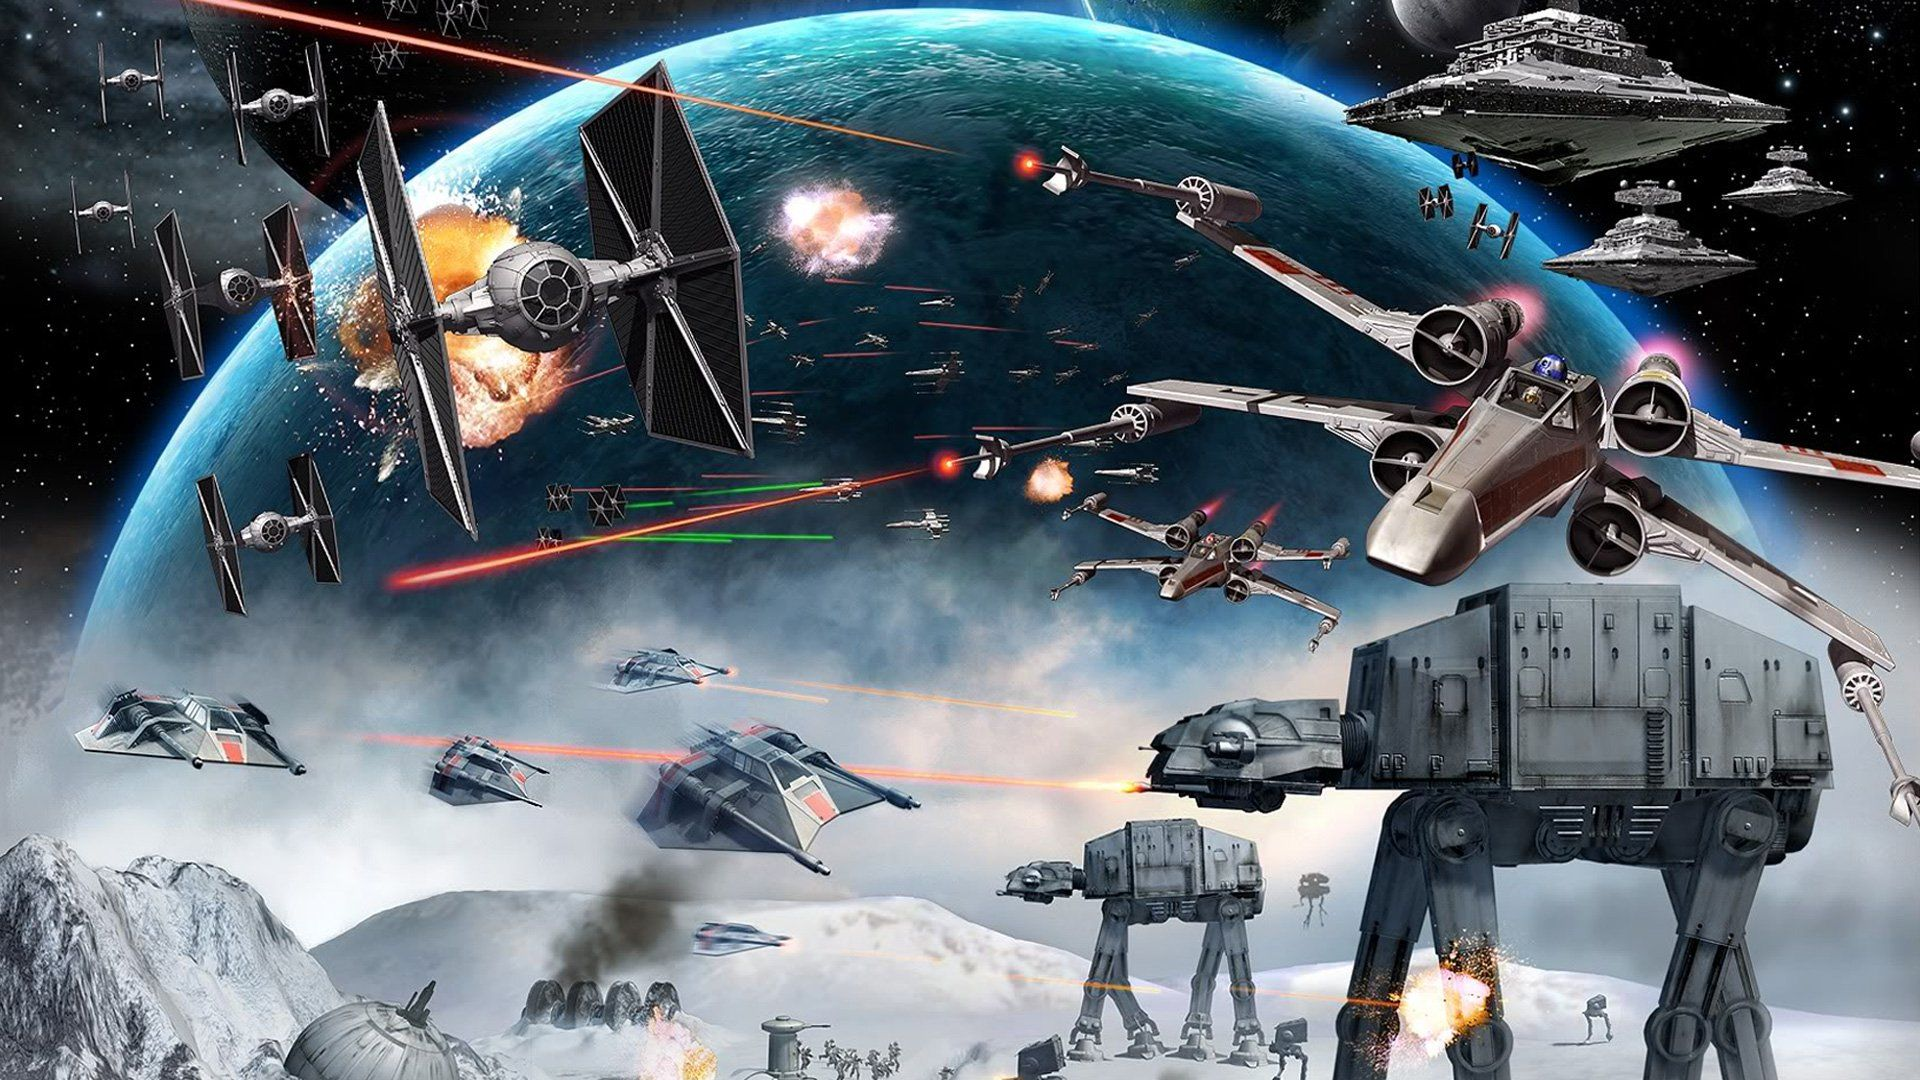 Star Wars Wallpapers Hd Resolution Movies Wallpapers